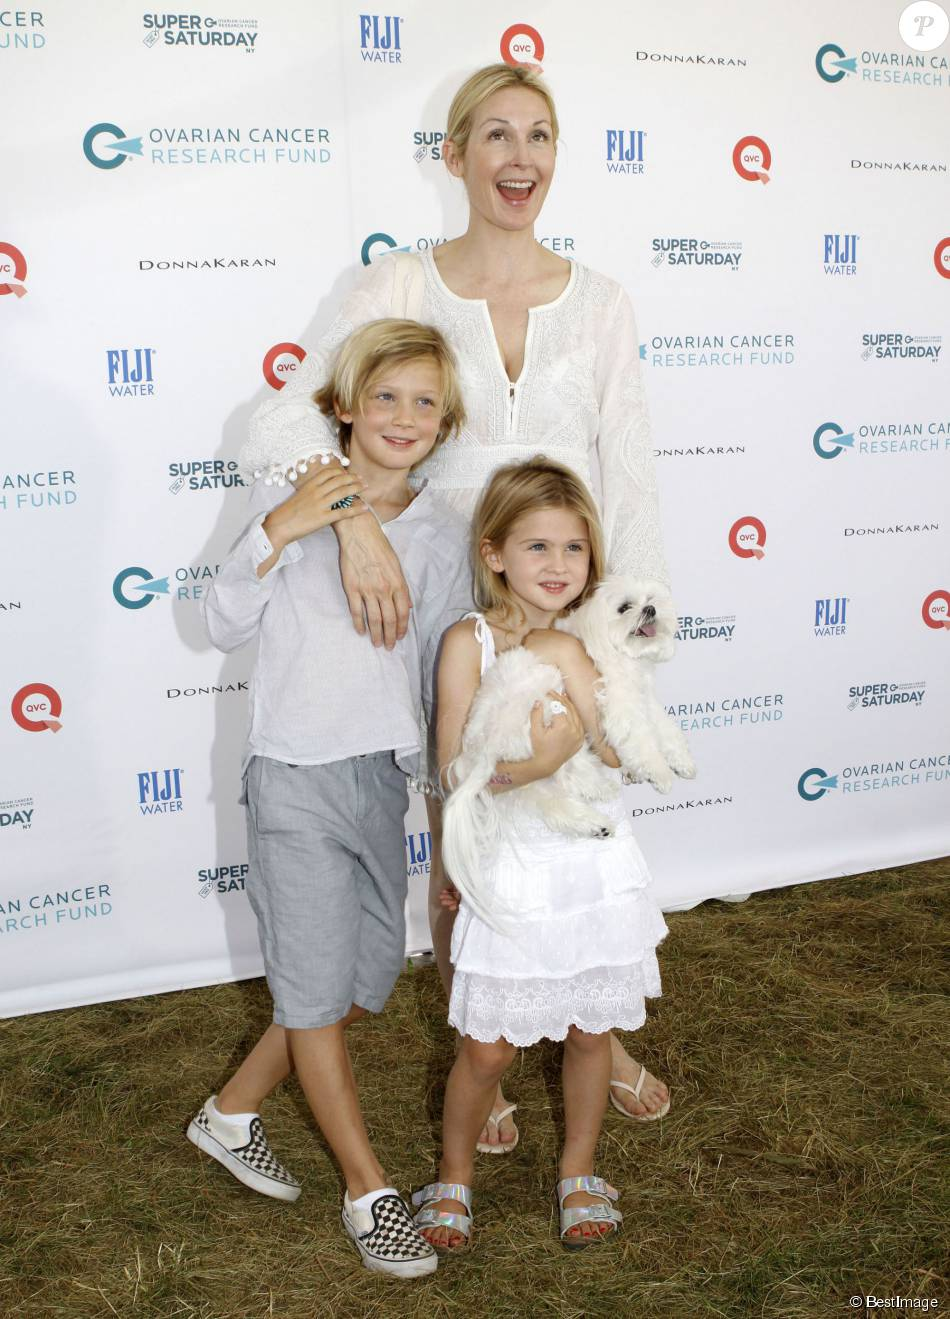 "Kelly Rutherford et ses enfants, Hermes et Helena, lors de la journée ""Ovarian Cancer Research Fund's Super Saturday"" à Water Mill dans les Hamptons, le 25 juillet 2015 à New York"